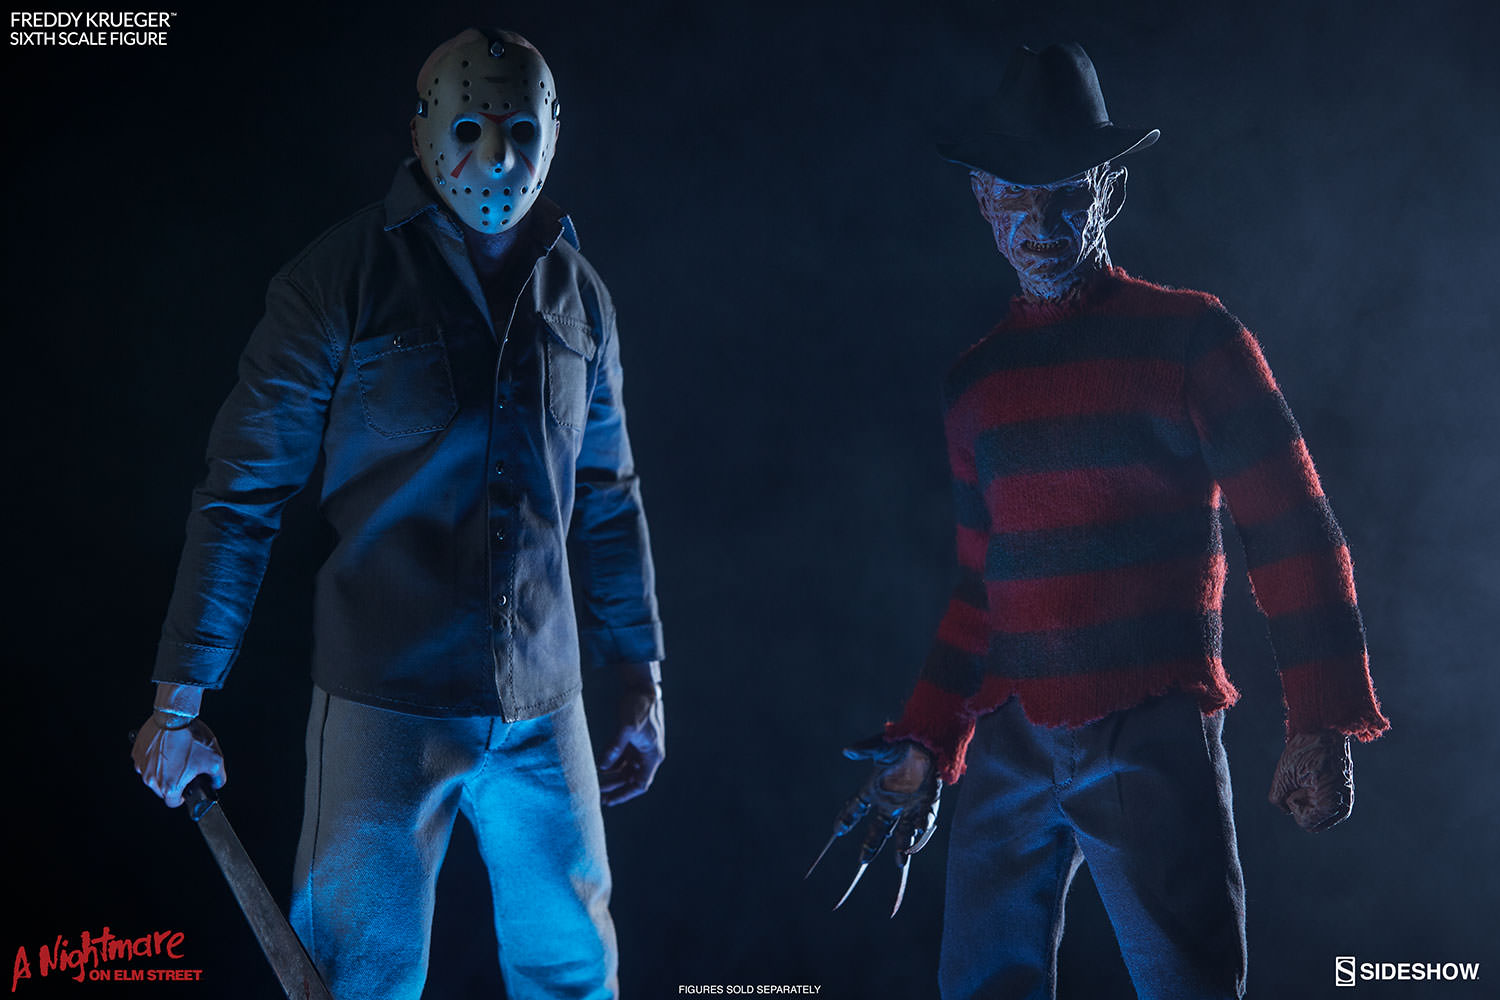 a-nightmare-on-elm-street-freddy-krueger-sixth-scale-100359-12